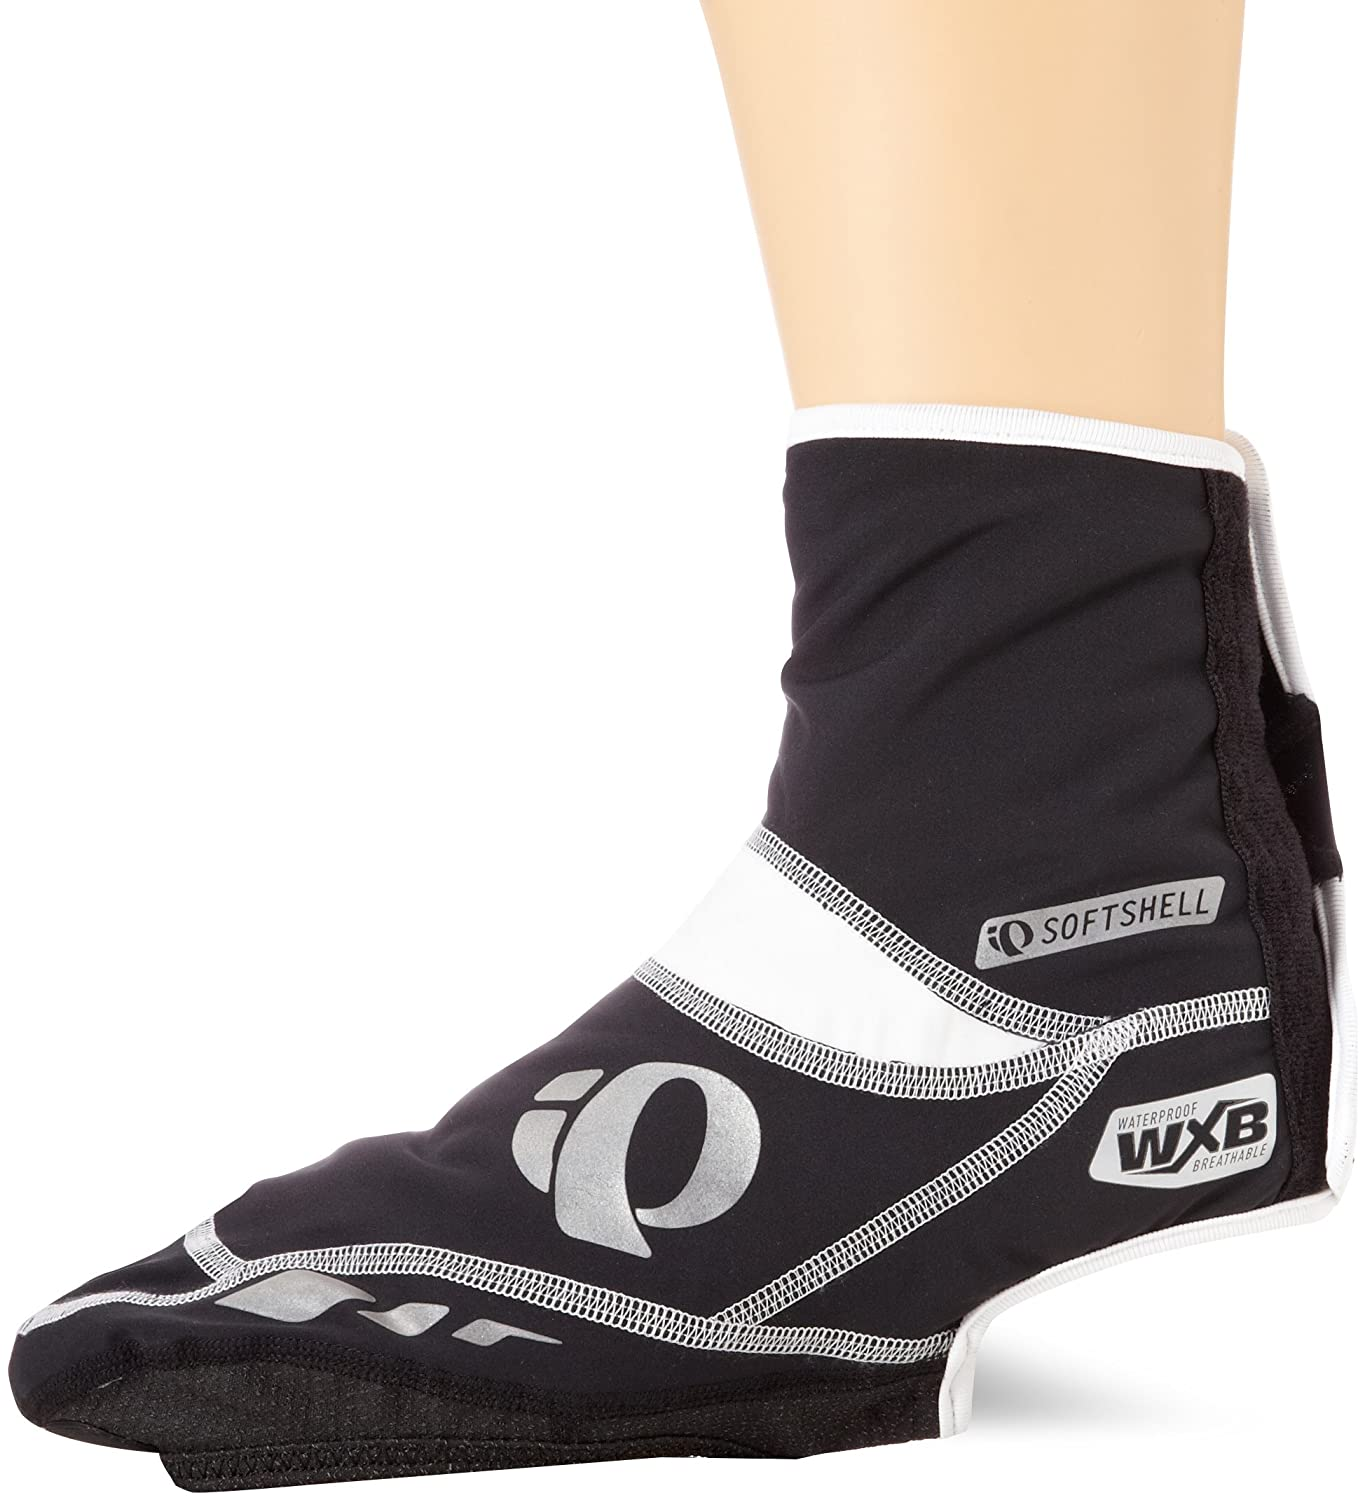 Pearl Izumi Pro Softshell WxB Shoe Cover Black X-Large 14381103